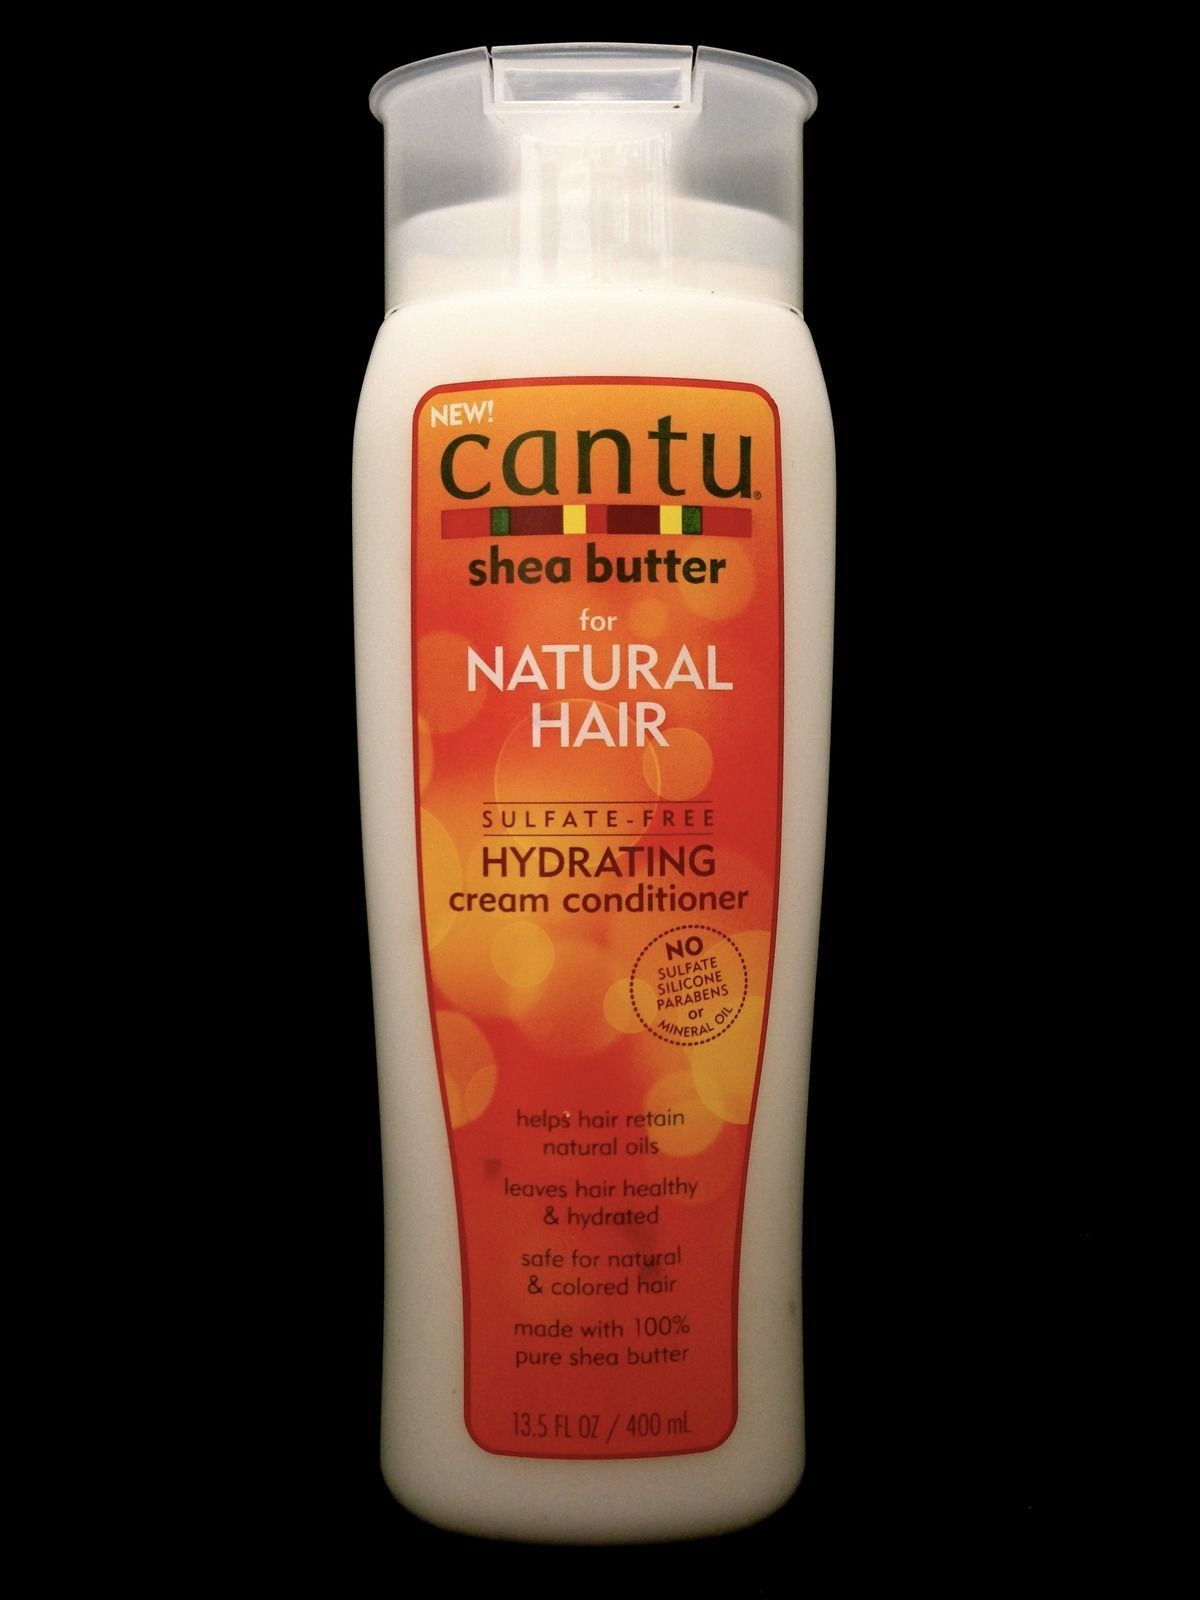 CANTU SHEA BUTTER FOR NATURAL HAIR SULFATE FREE HYDRATING CREAM CONDITIONER 13.5